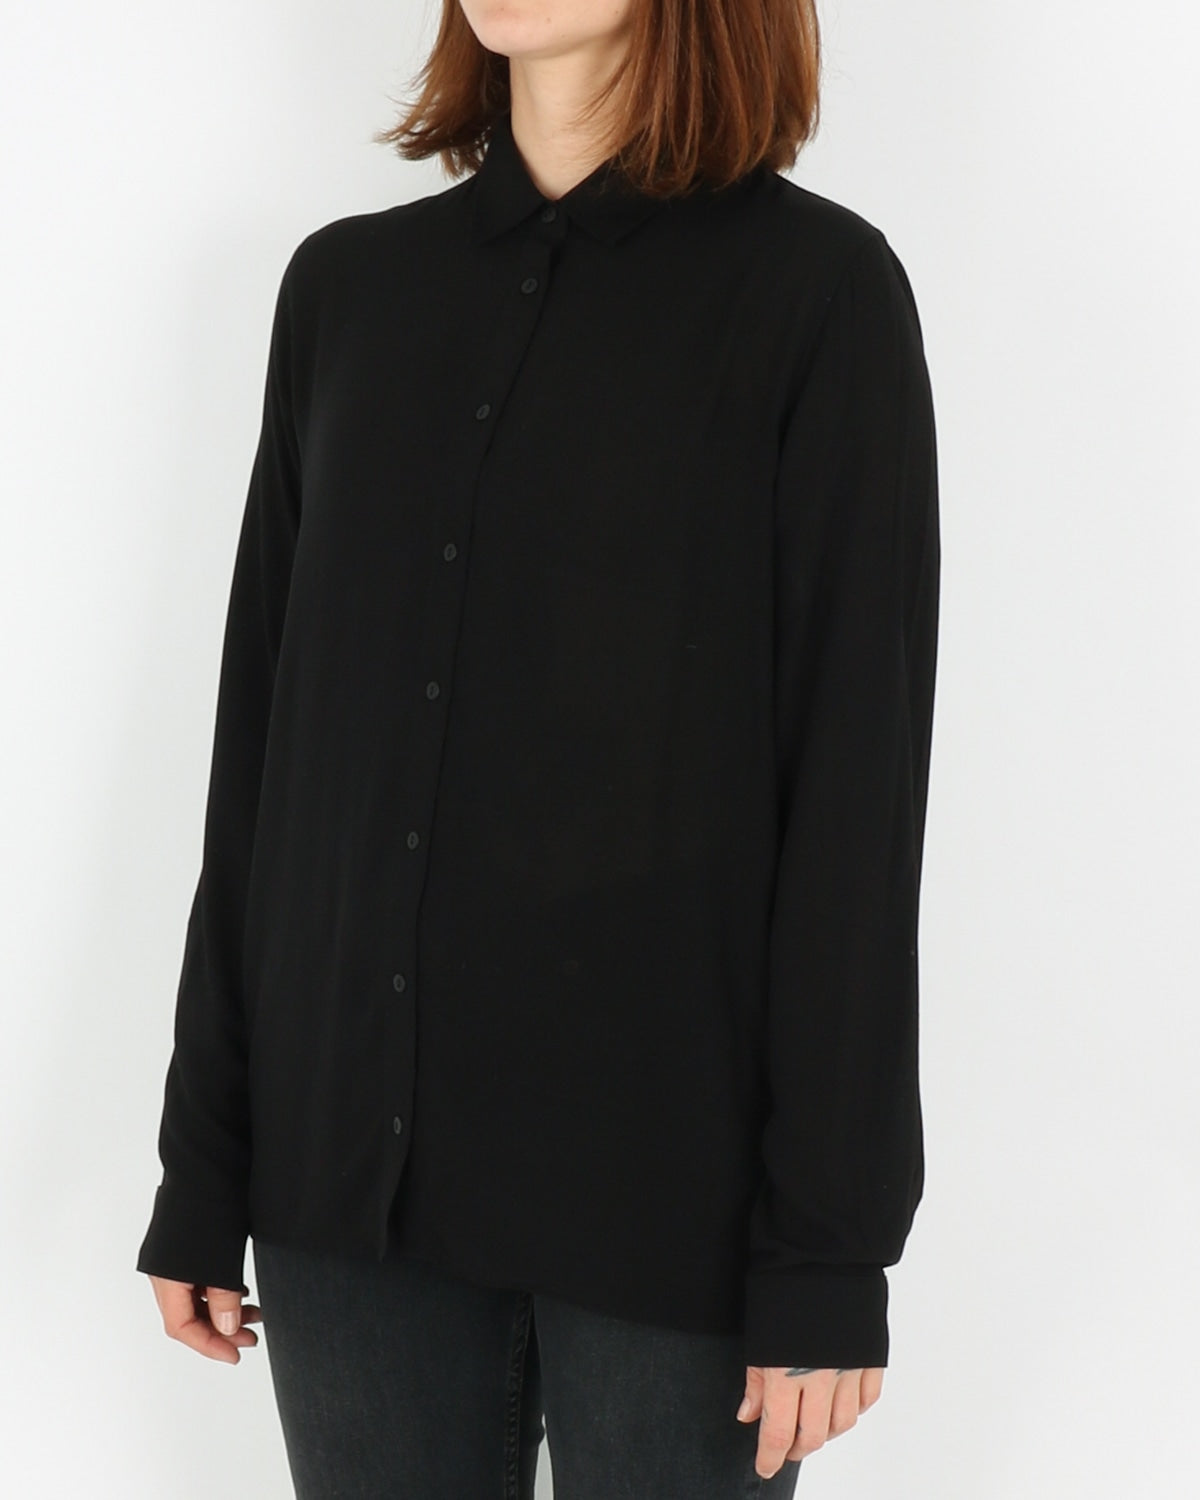 basic apparel_alanis shirt_black_2_3